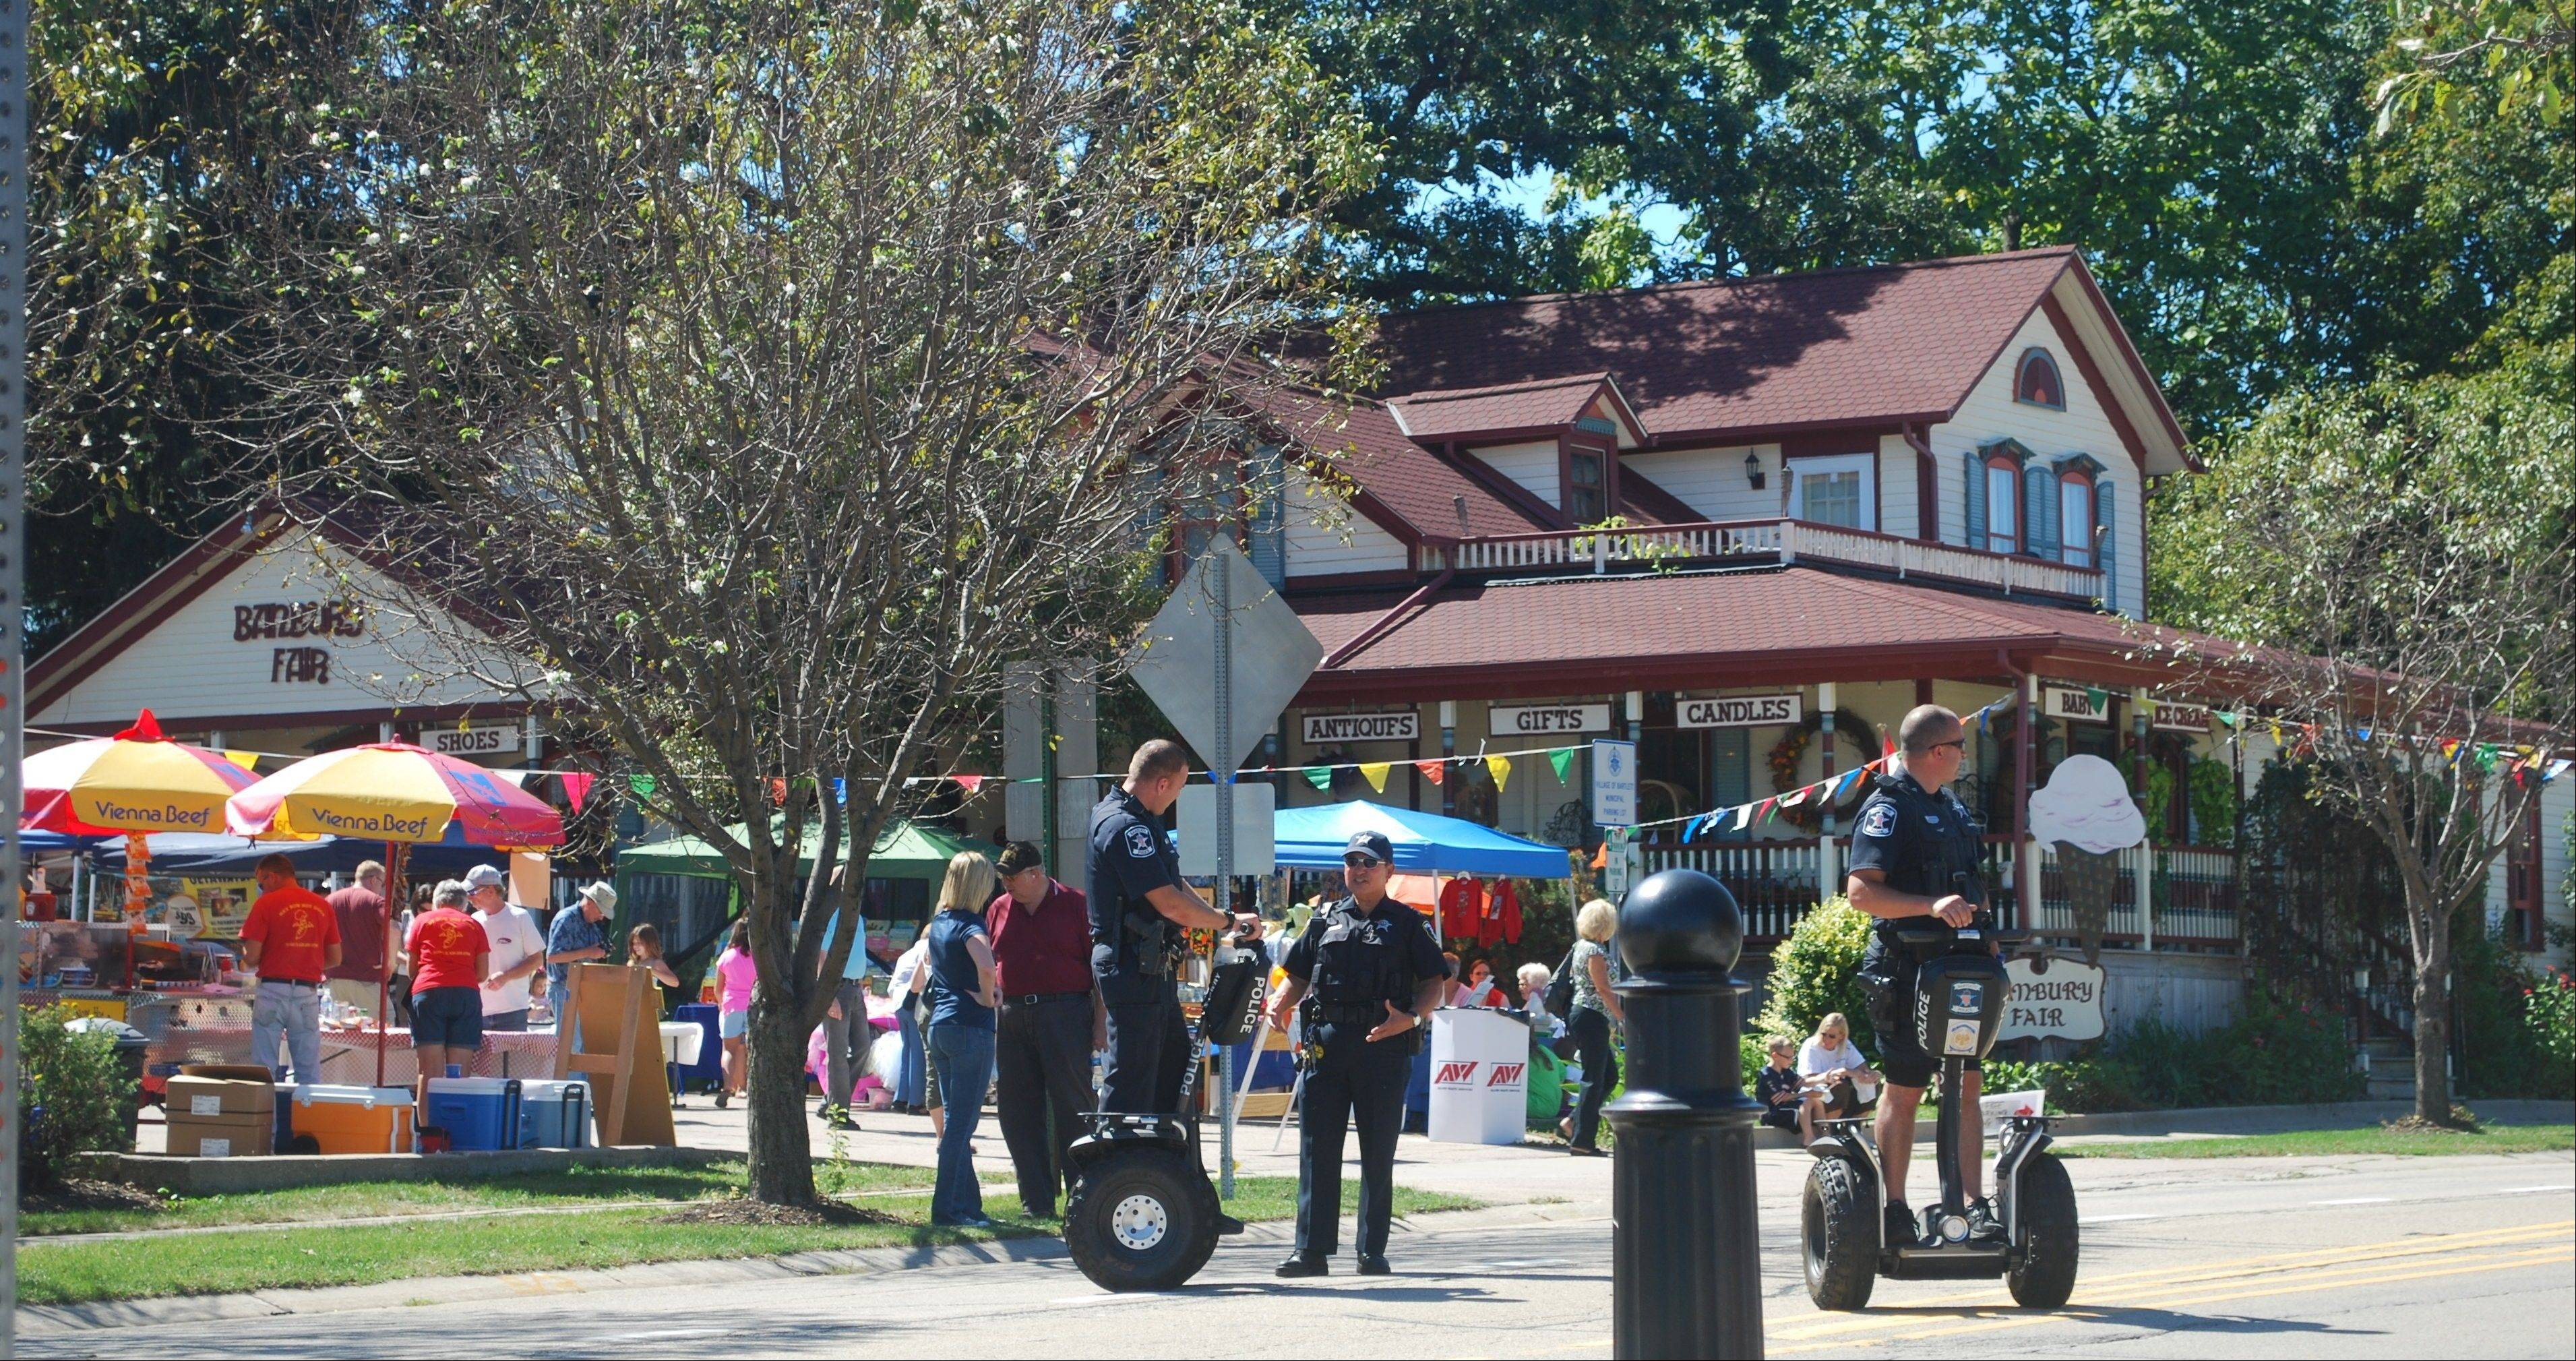 The old -- Banbury Fair, built in the 1880s -- blends with new, Bartlett police on Segways.